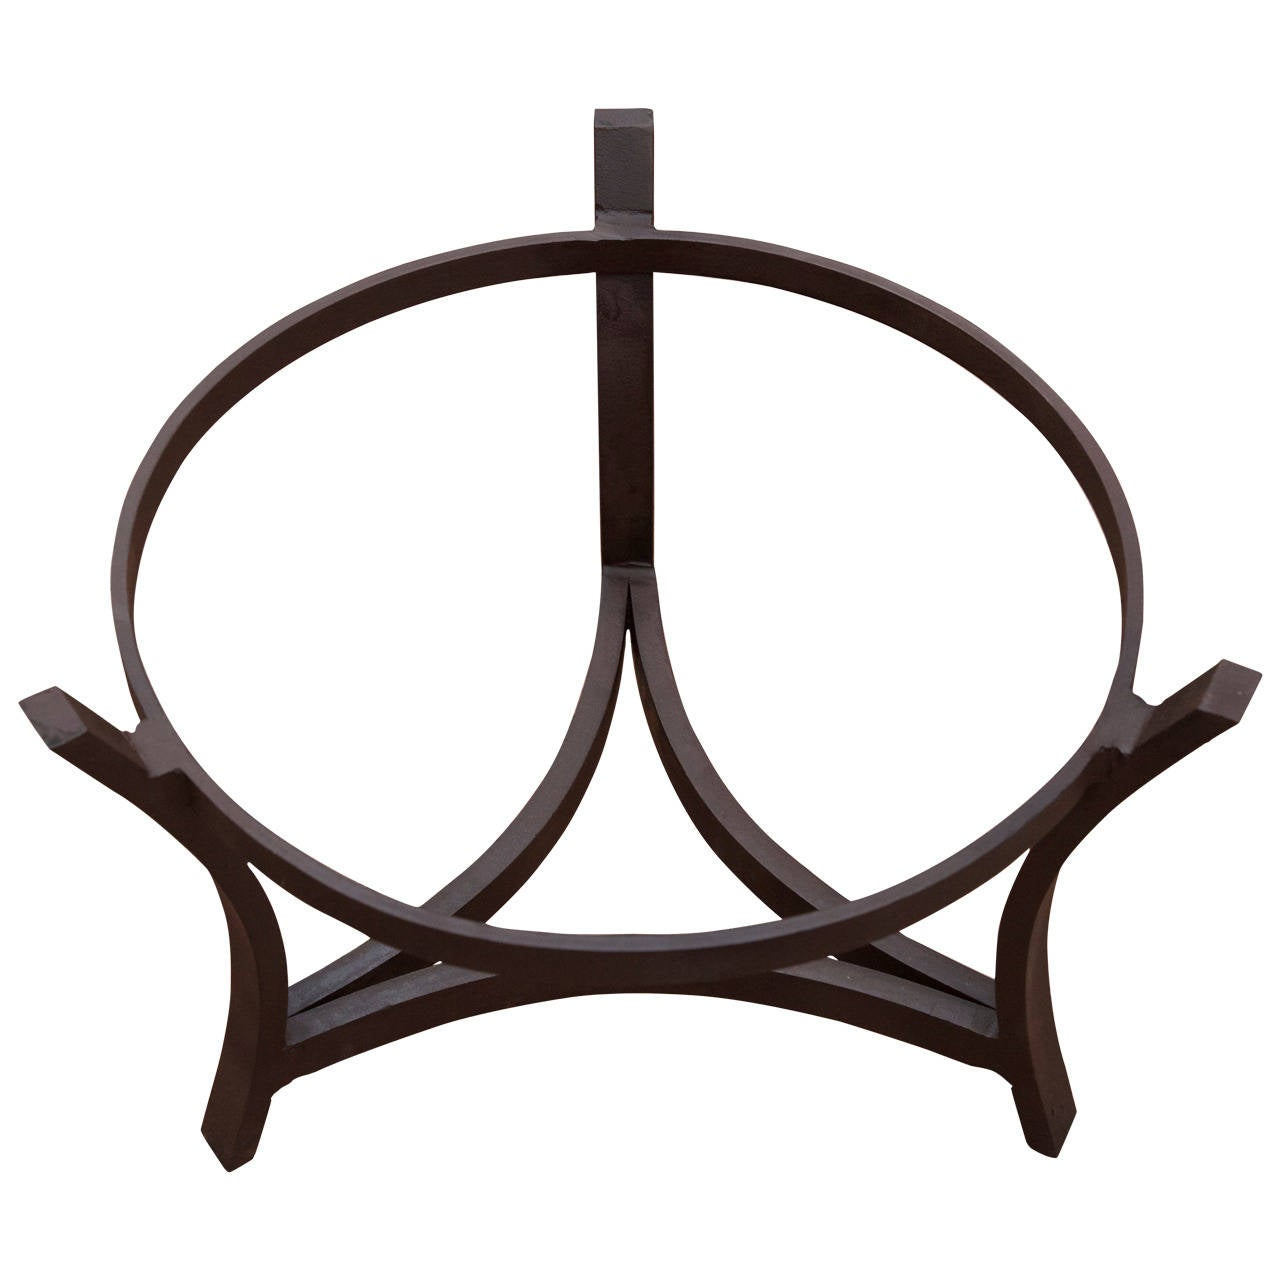 Wrought iron table base model for sale at 1stdibs Wrought iron coffee table bases